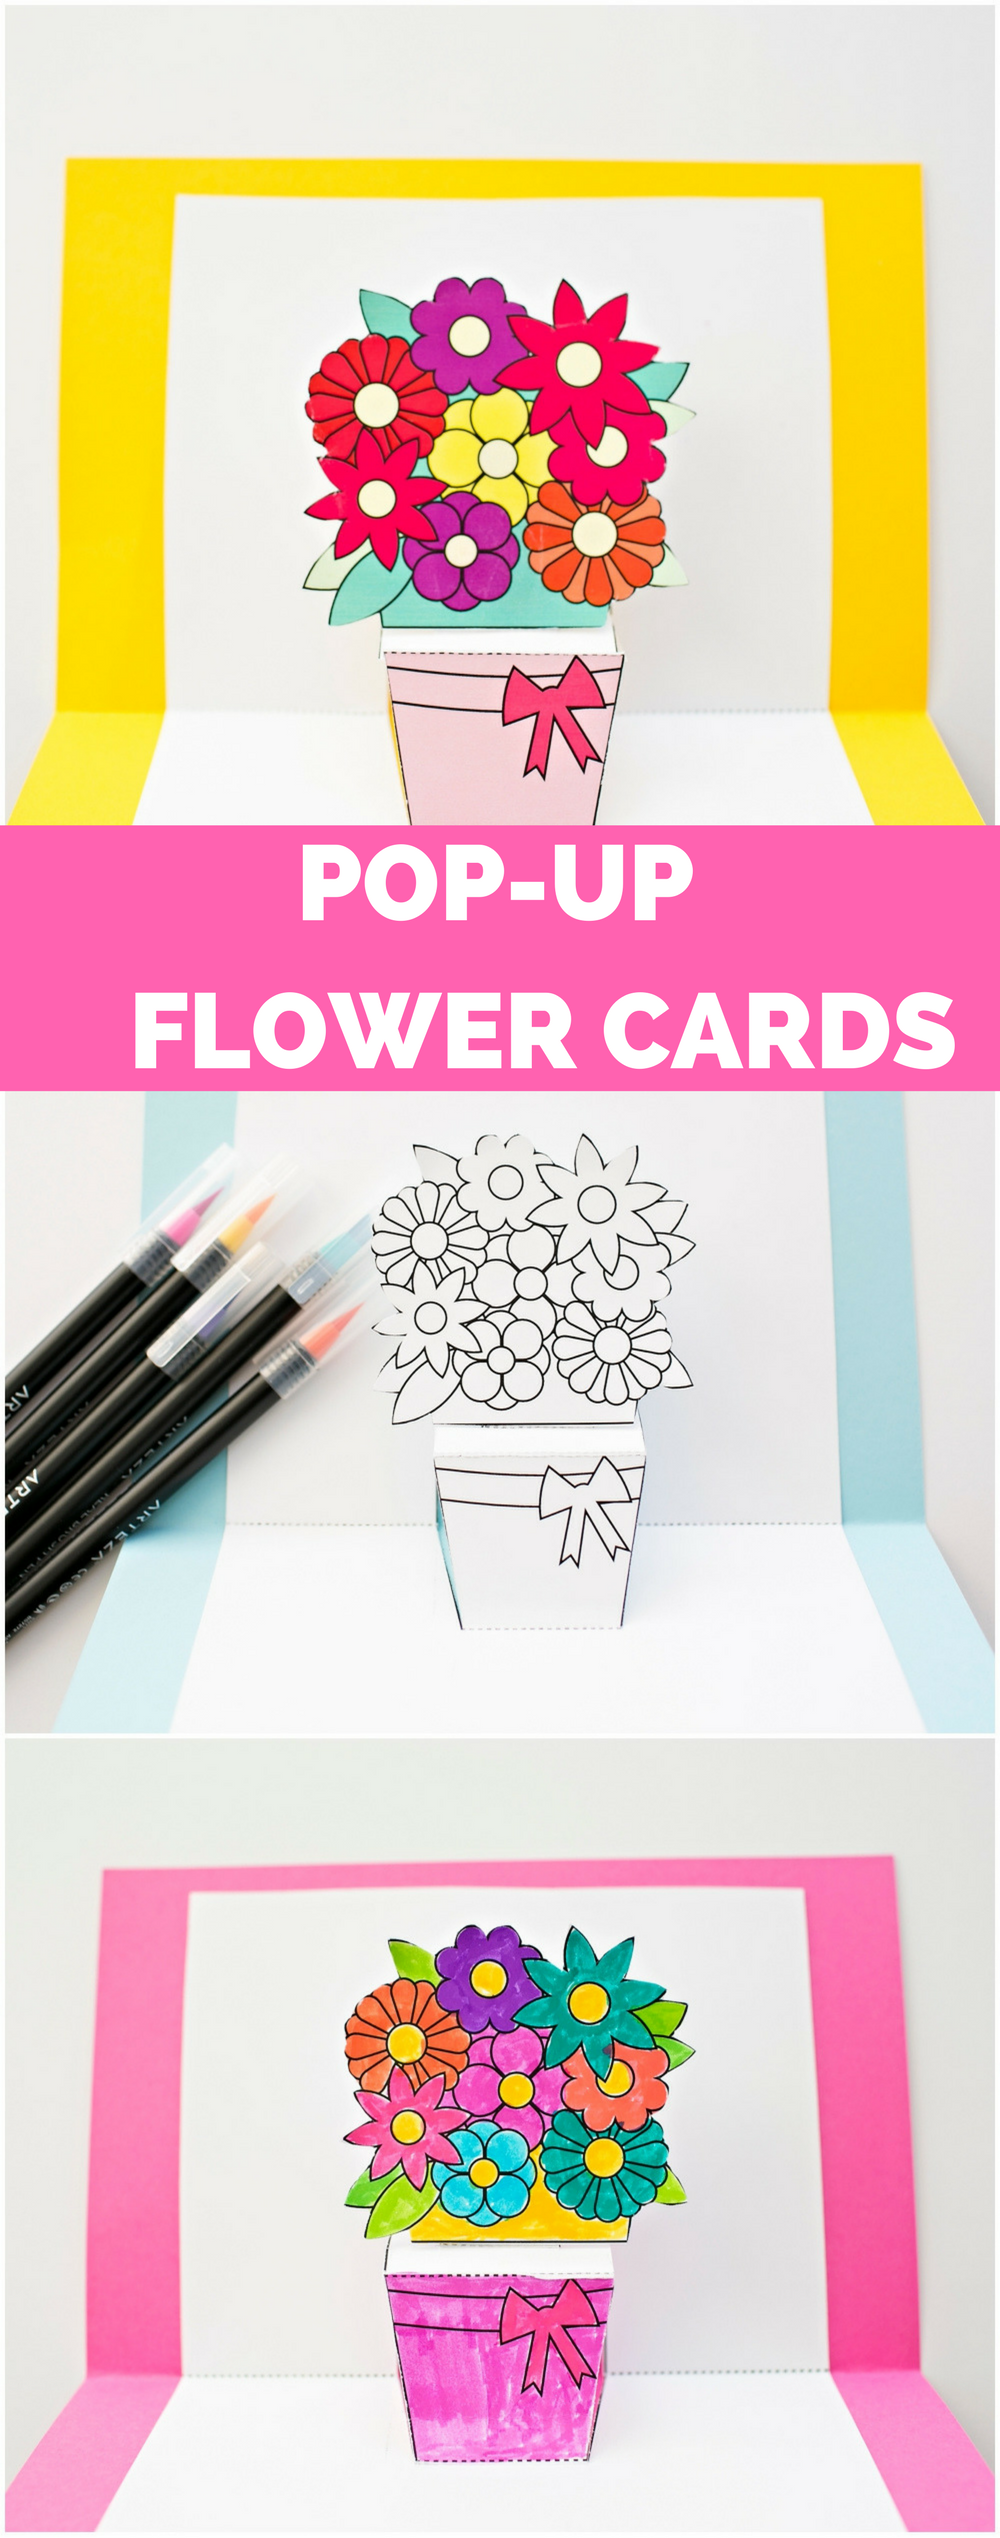 Diy pop up flower cards with free printable templates and for Pop up birthday cards for mom